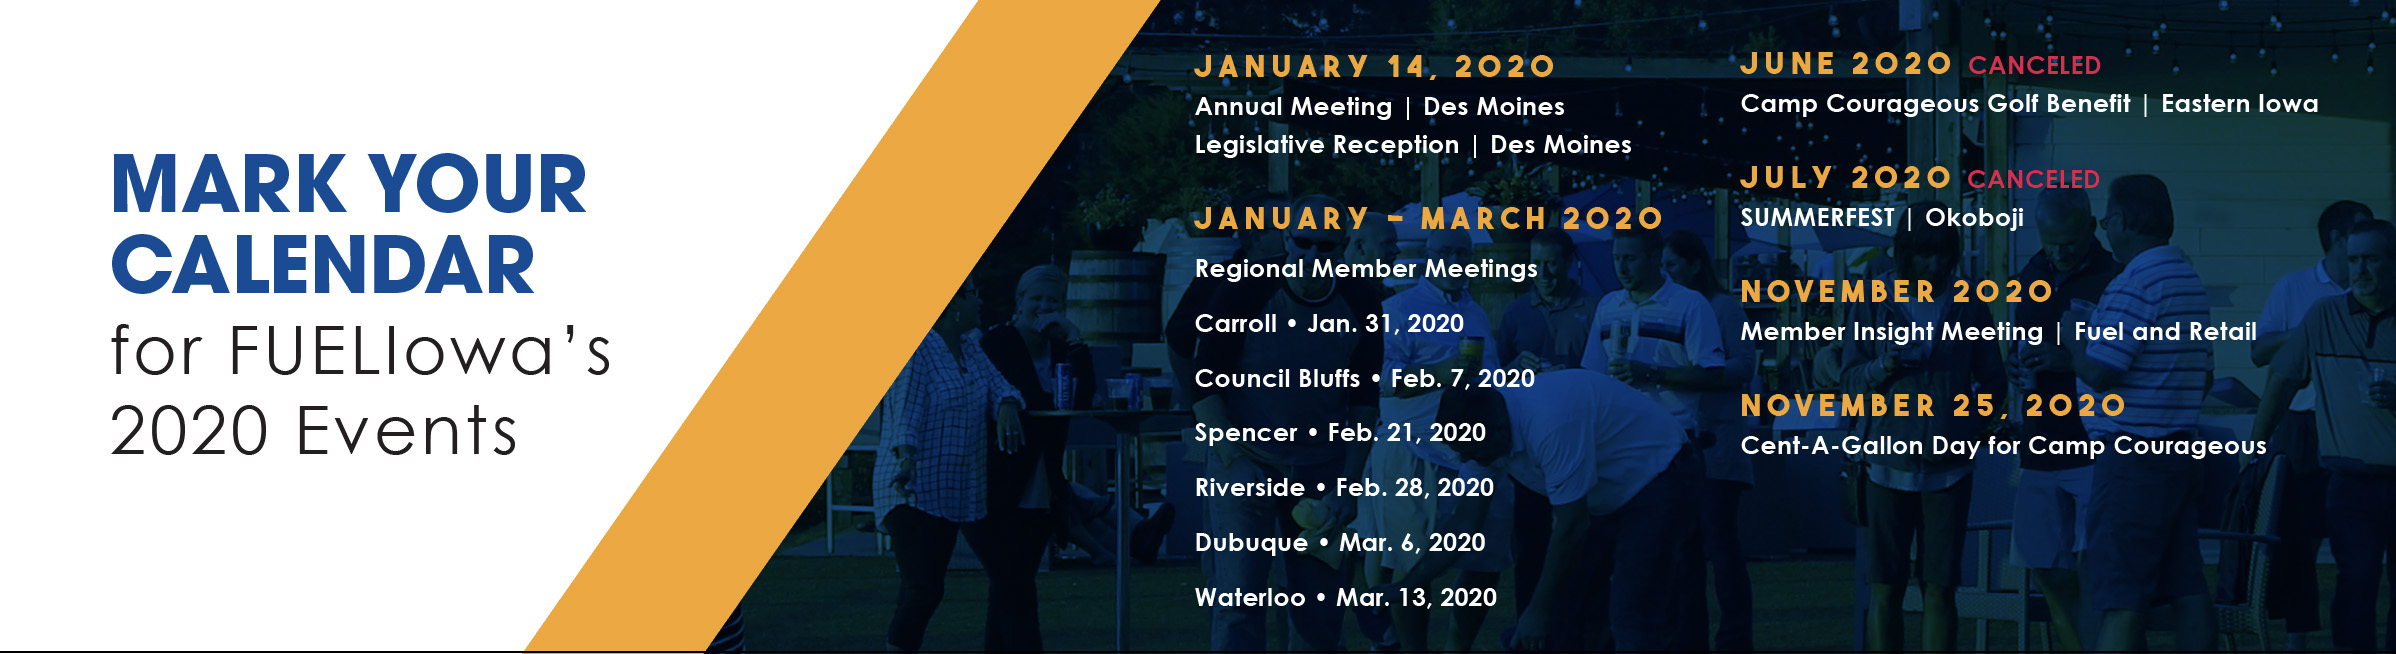 Calendar Of Events in Des Moines Calendar Of Events 2021